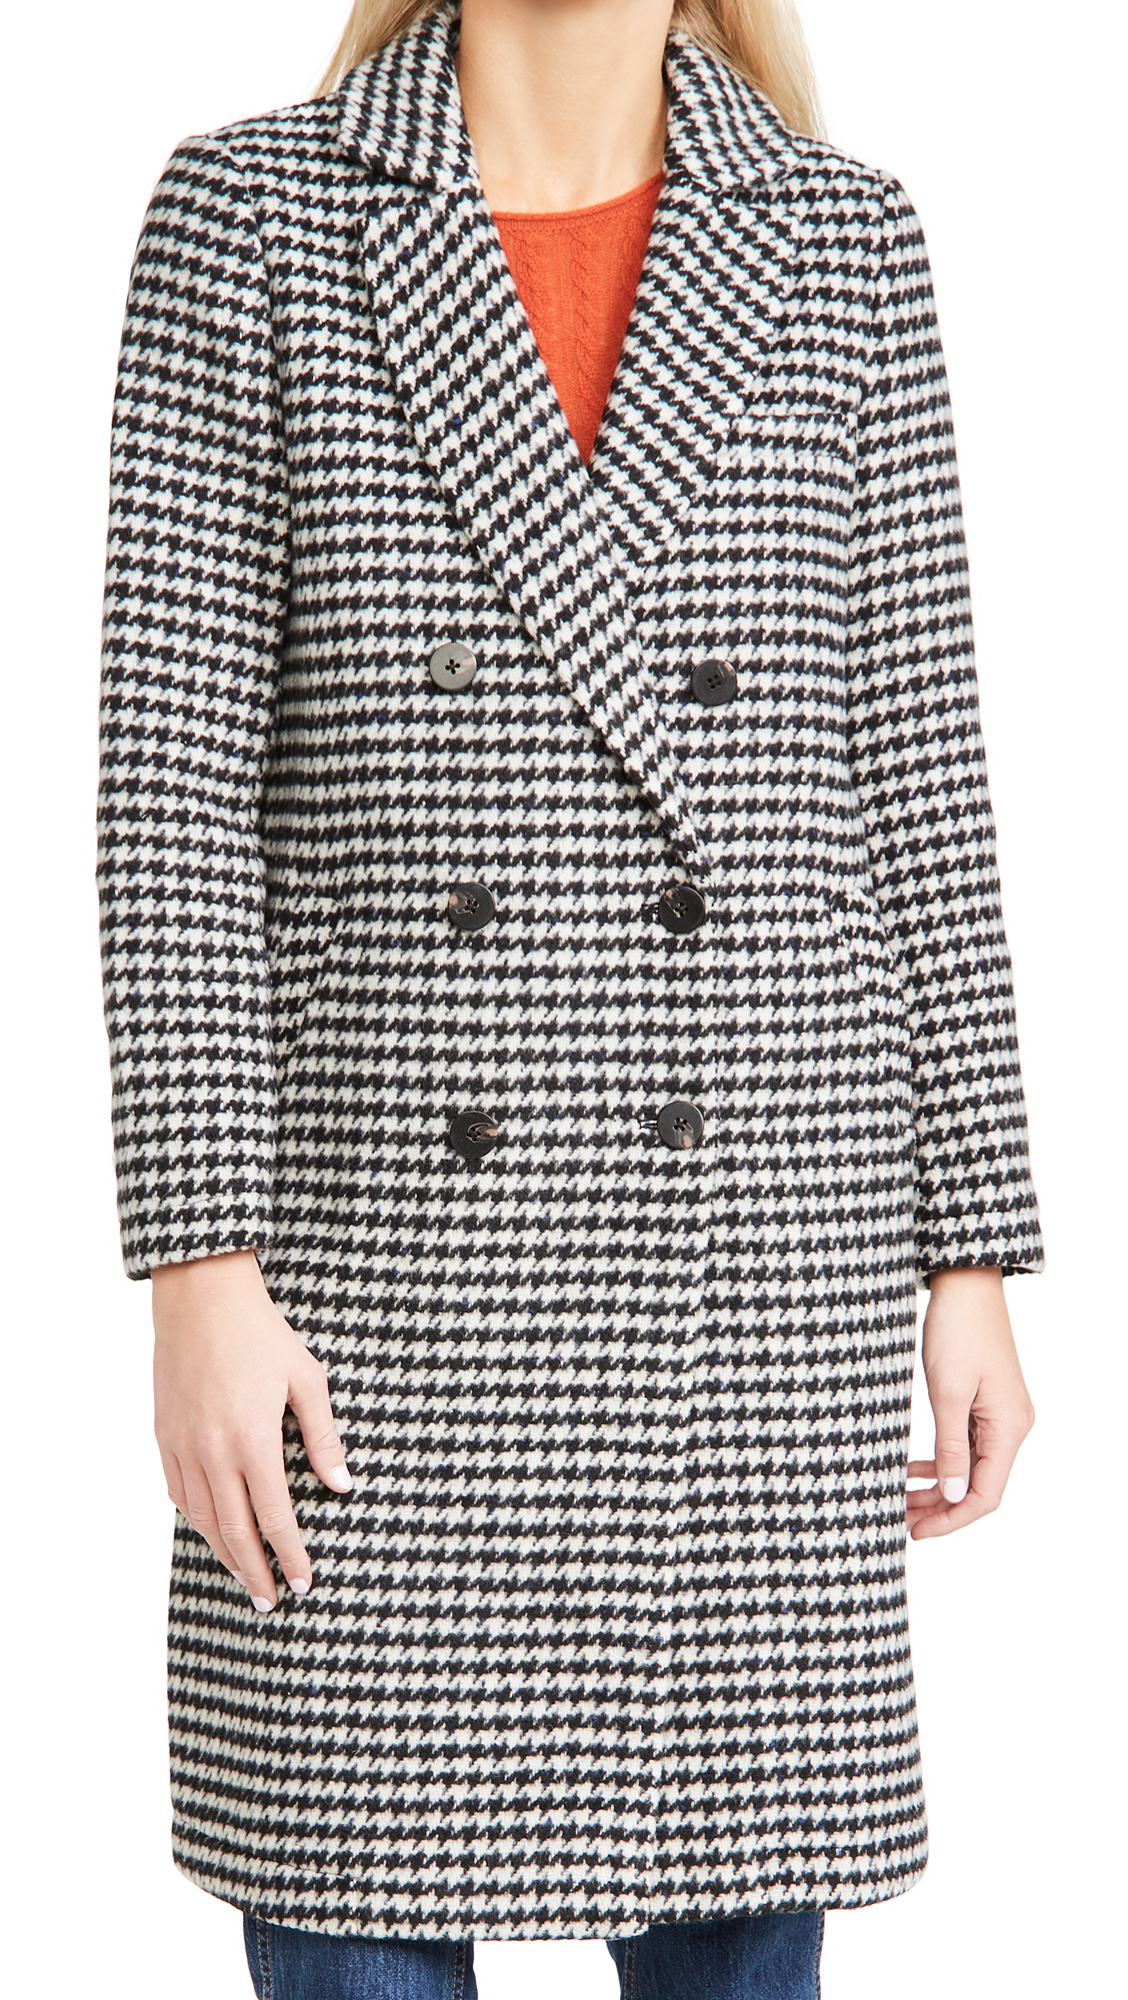 Scotch & Soda/Maison Scotch Double-Breasted Tailored Wool Coat